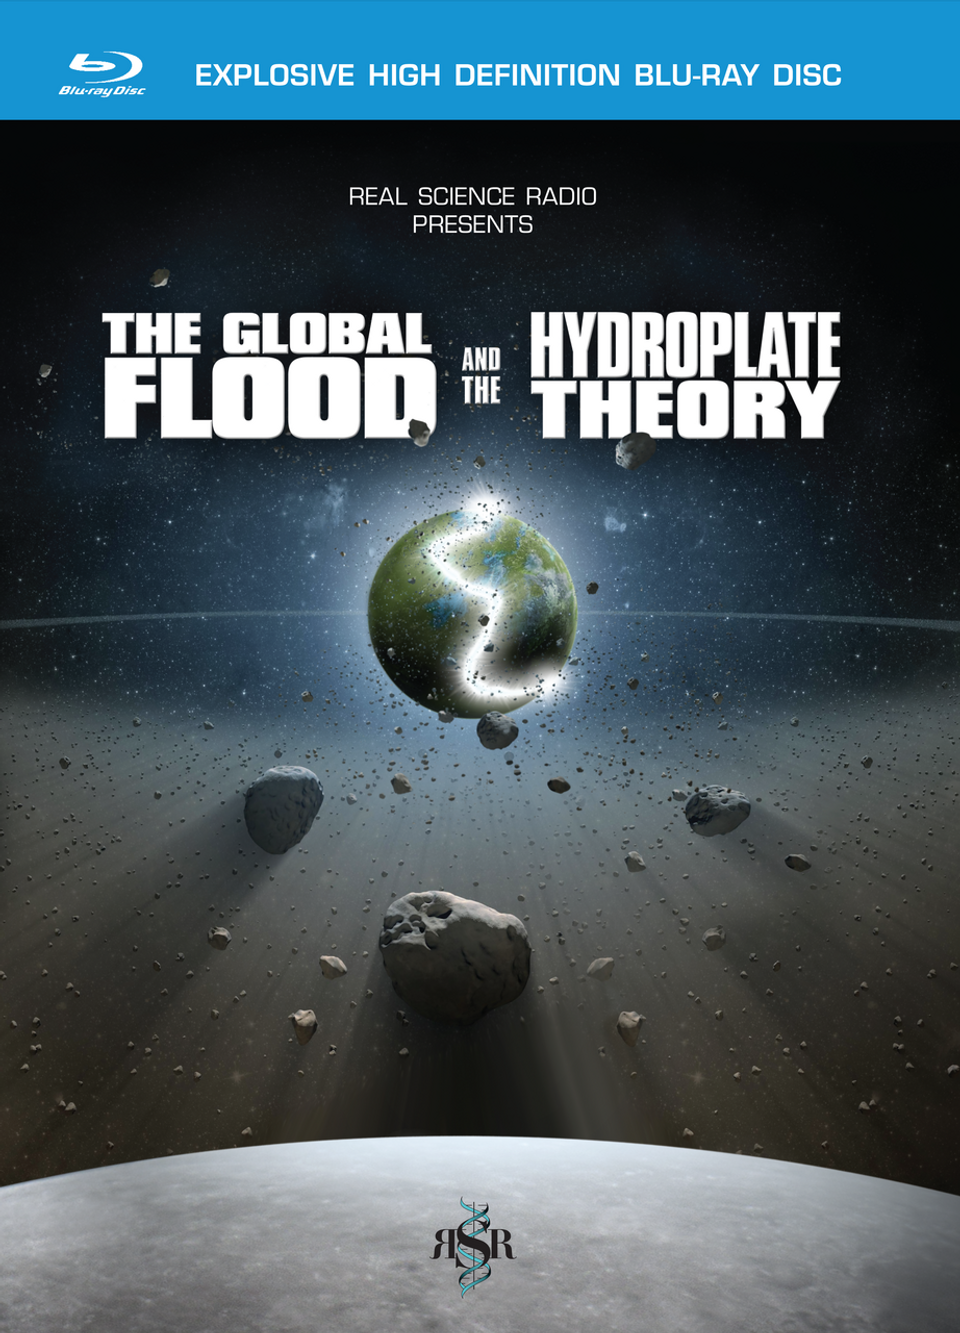 The Global Flood and the Hydroplate Theory - Blu-ray, 2-DVD Set or HD Download